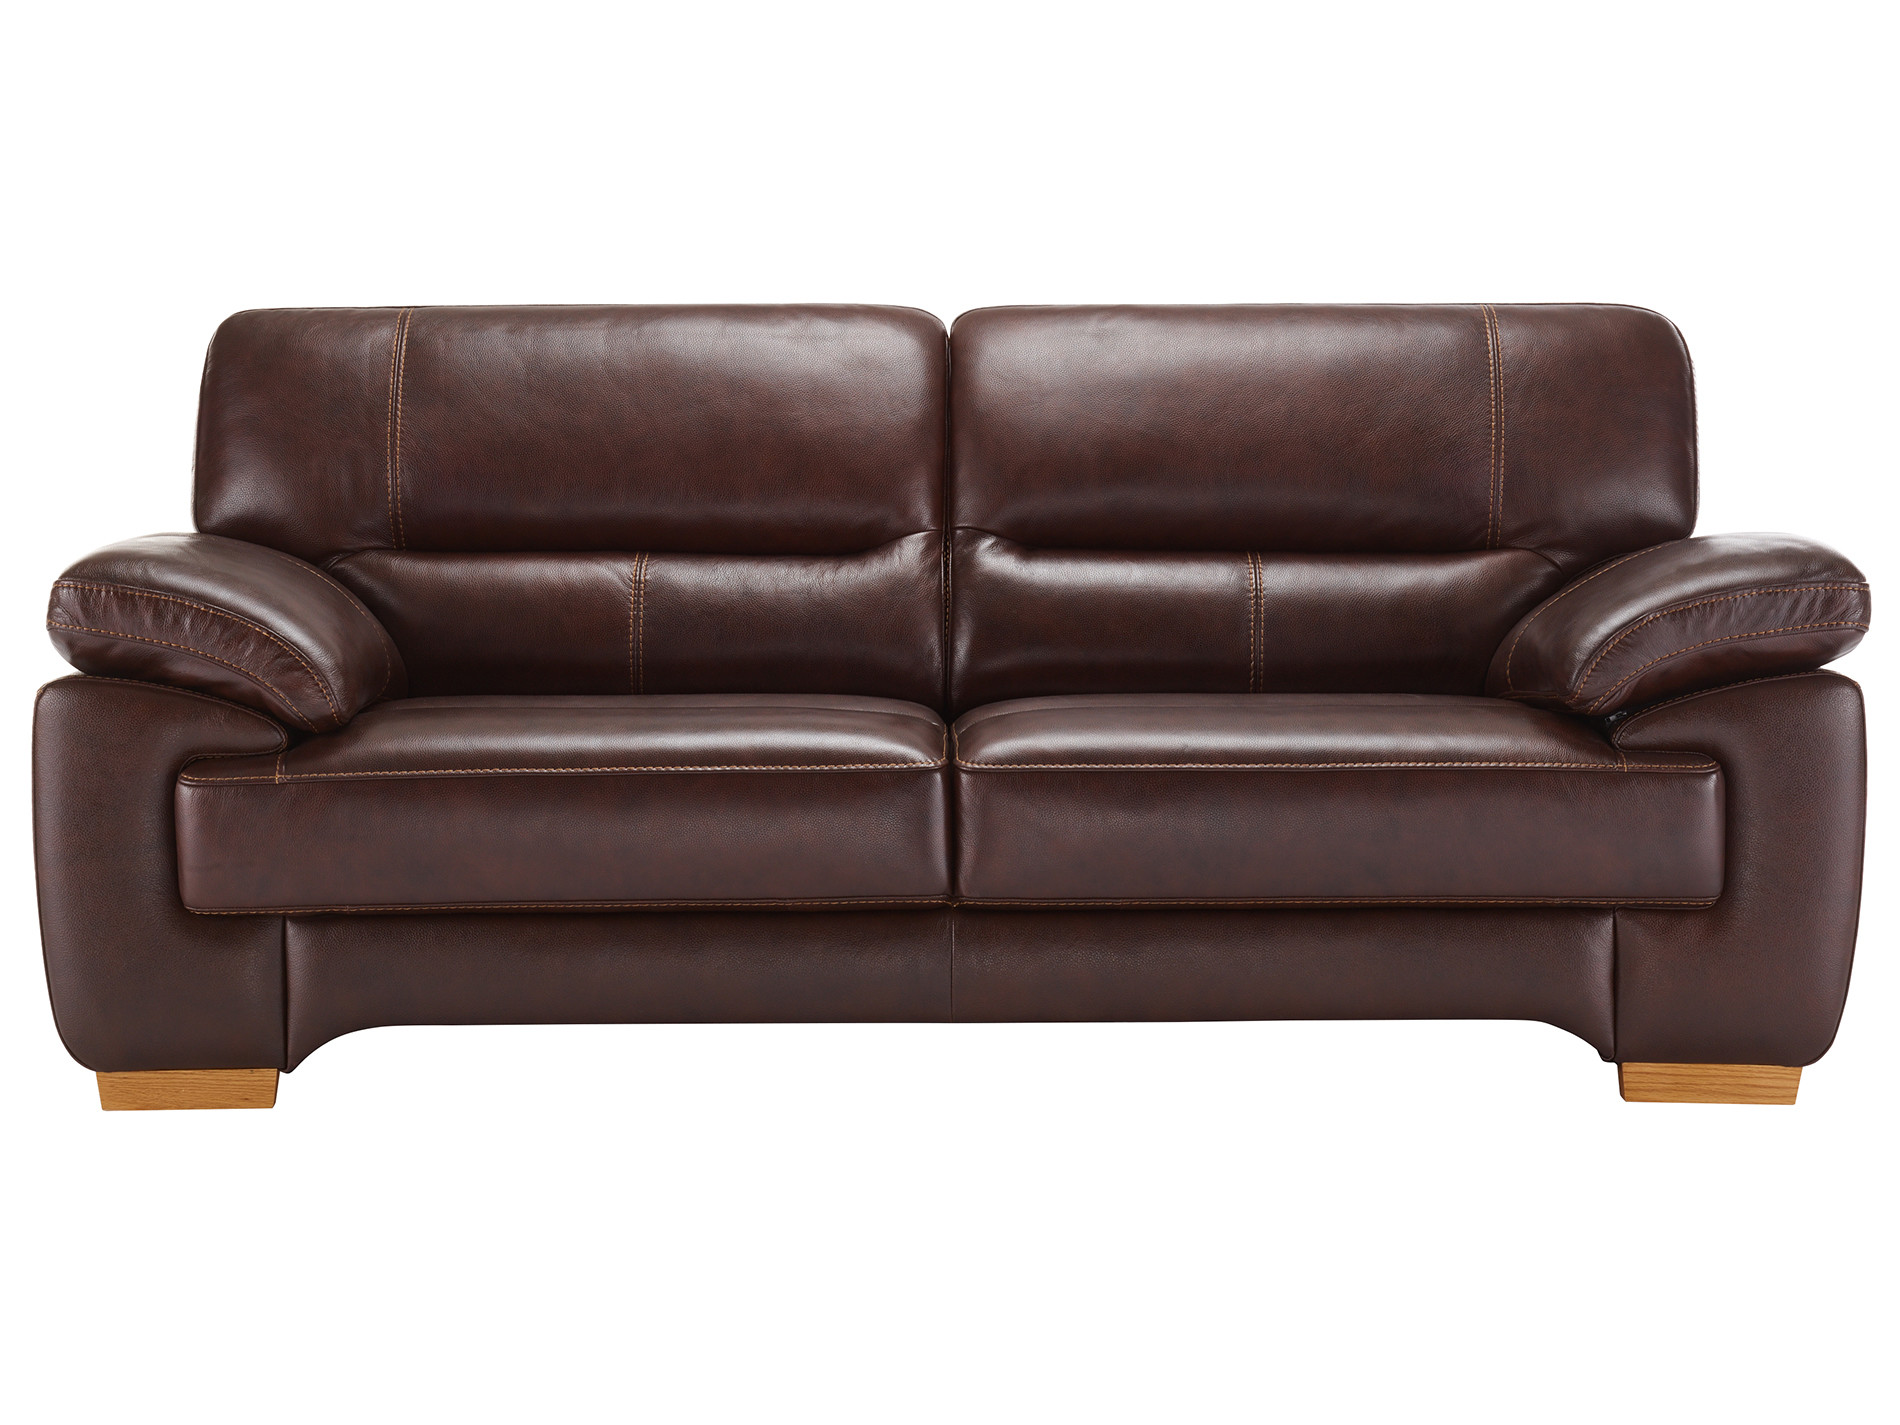 clayton 3 seater sofa in brown leather oak furniture land. Black Bedroom Furniture Sets. Home Design Ideas